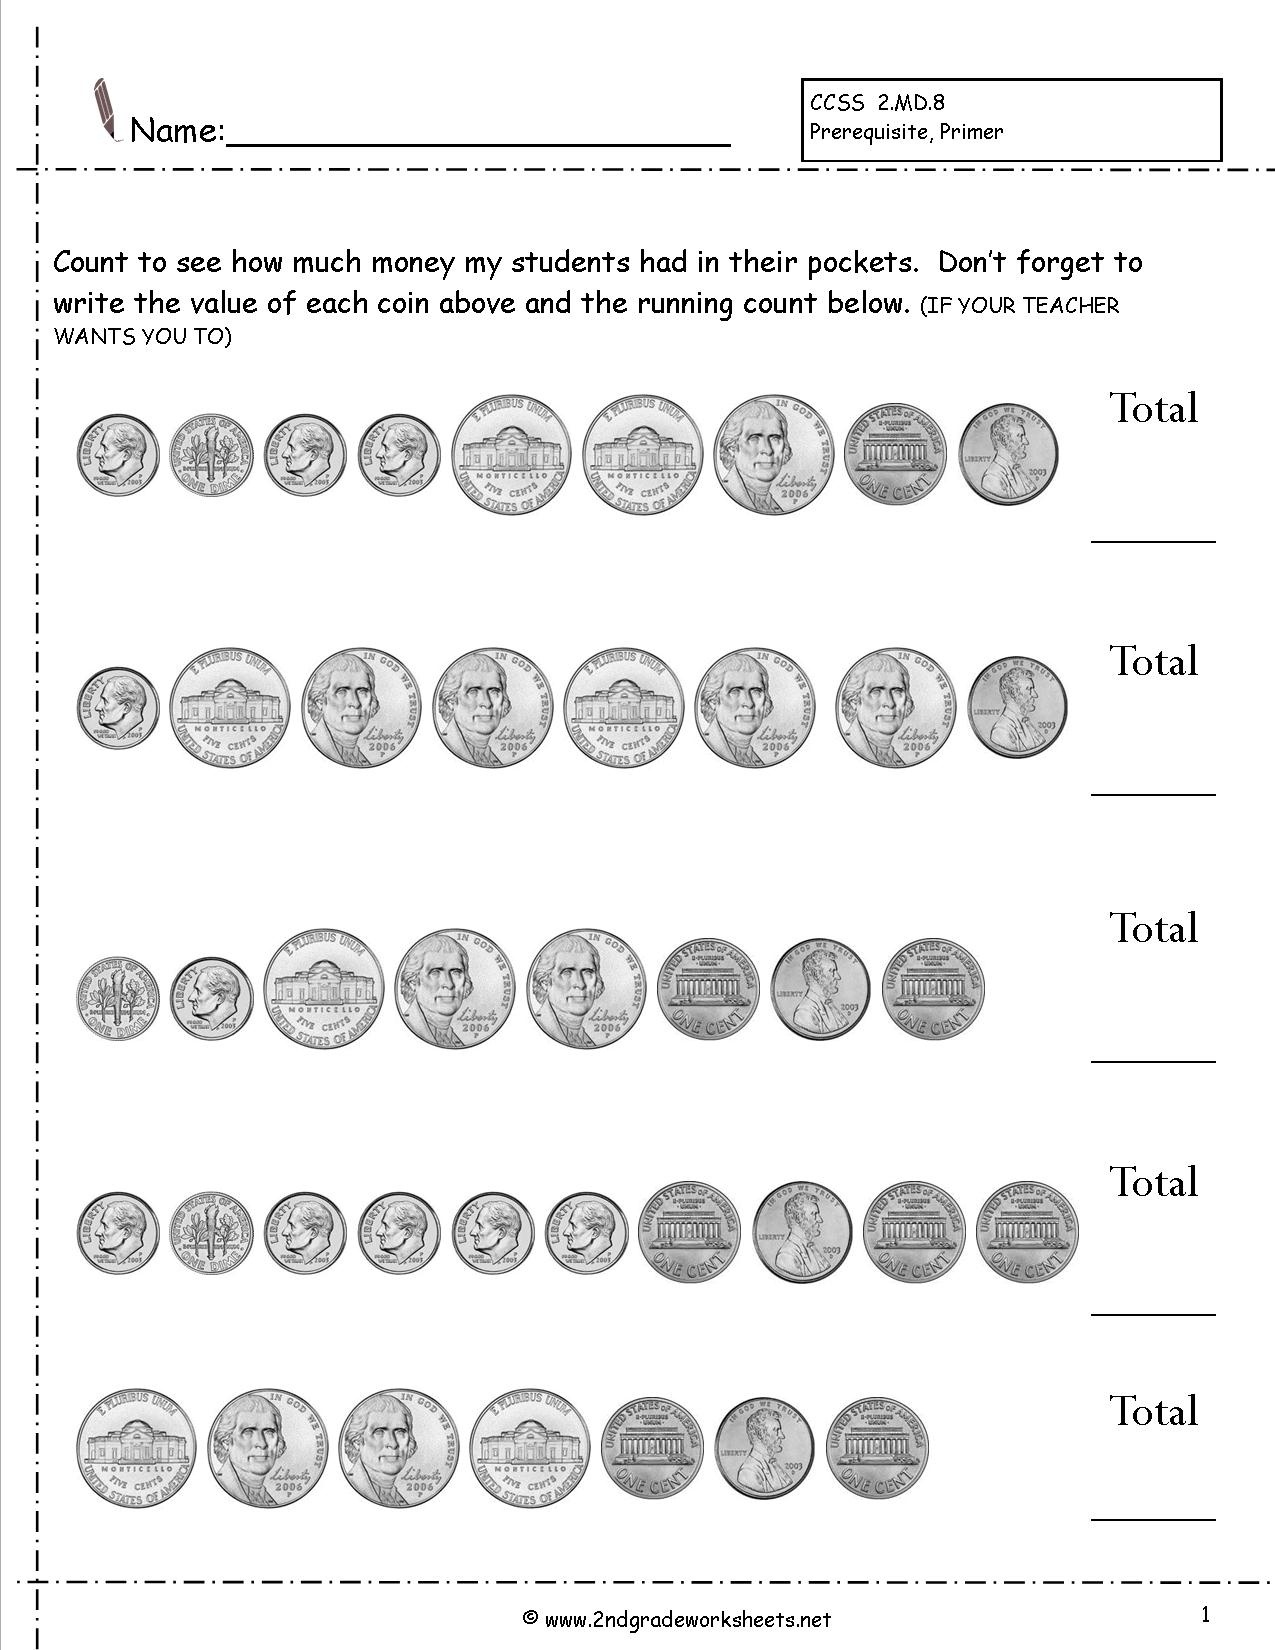 Counting Coins And Money Worksheets And Printouts - Free Printable Money Activities